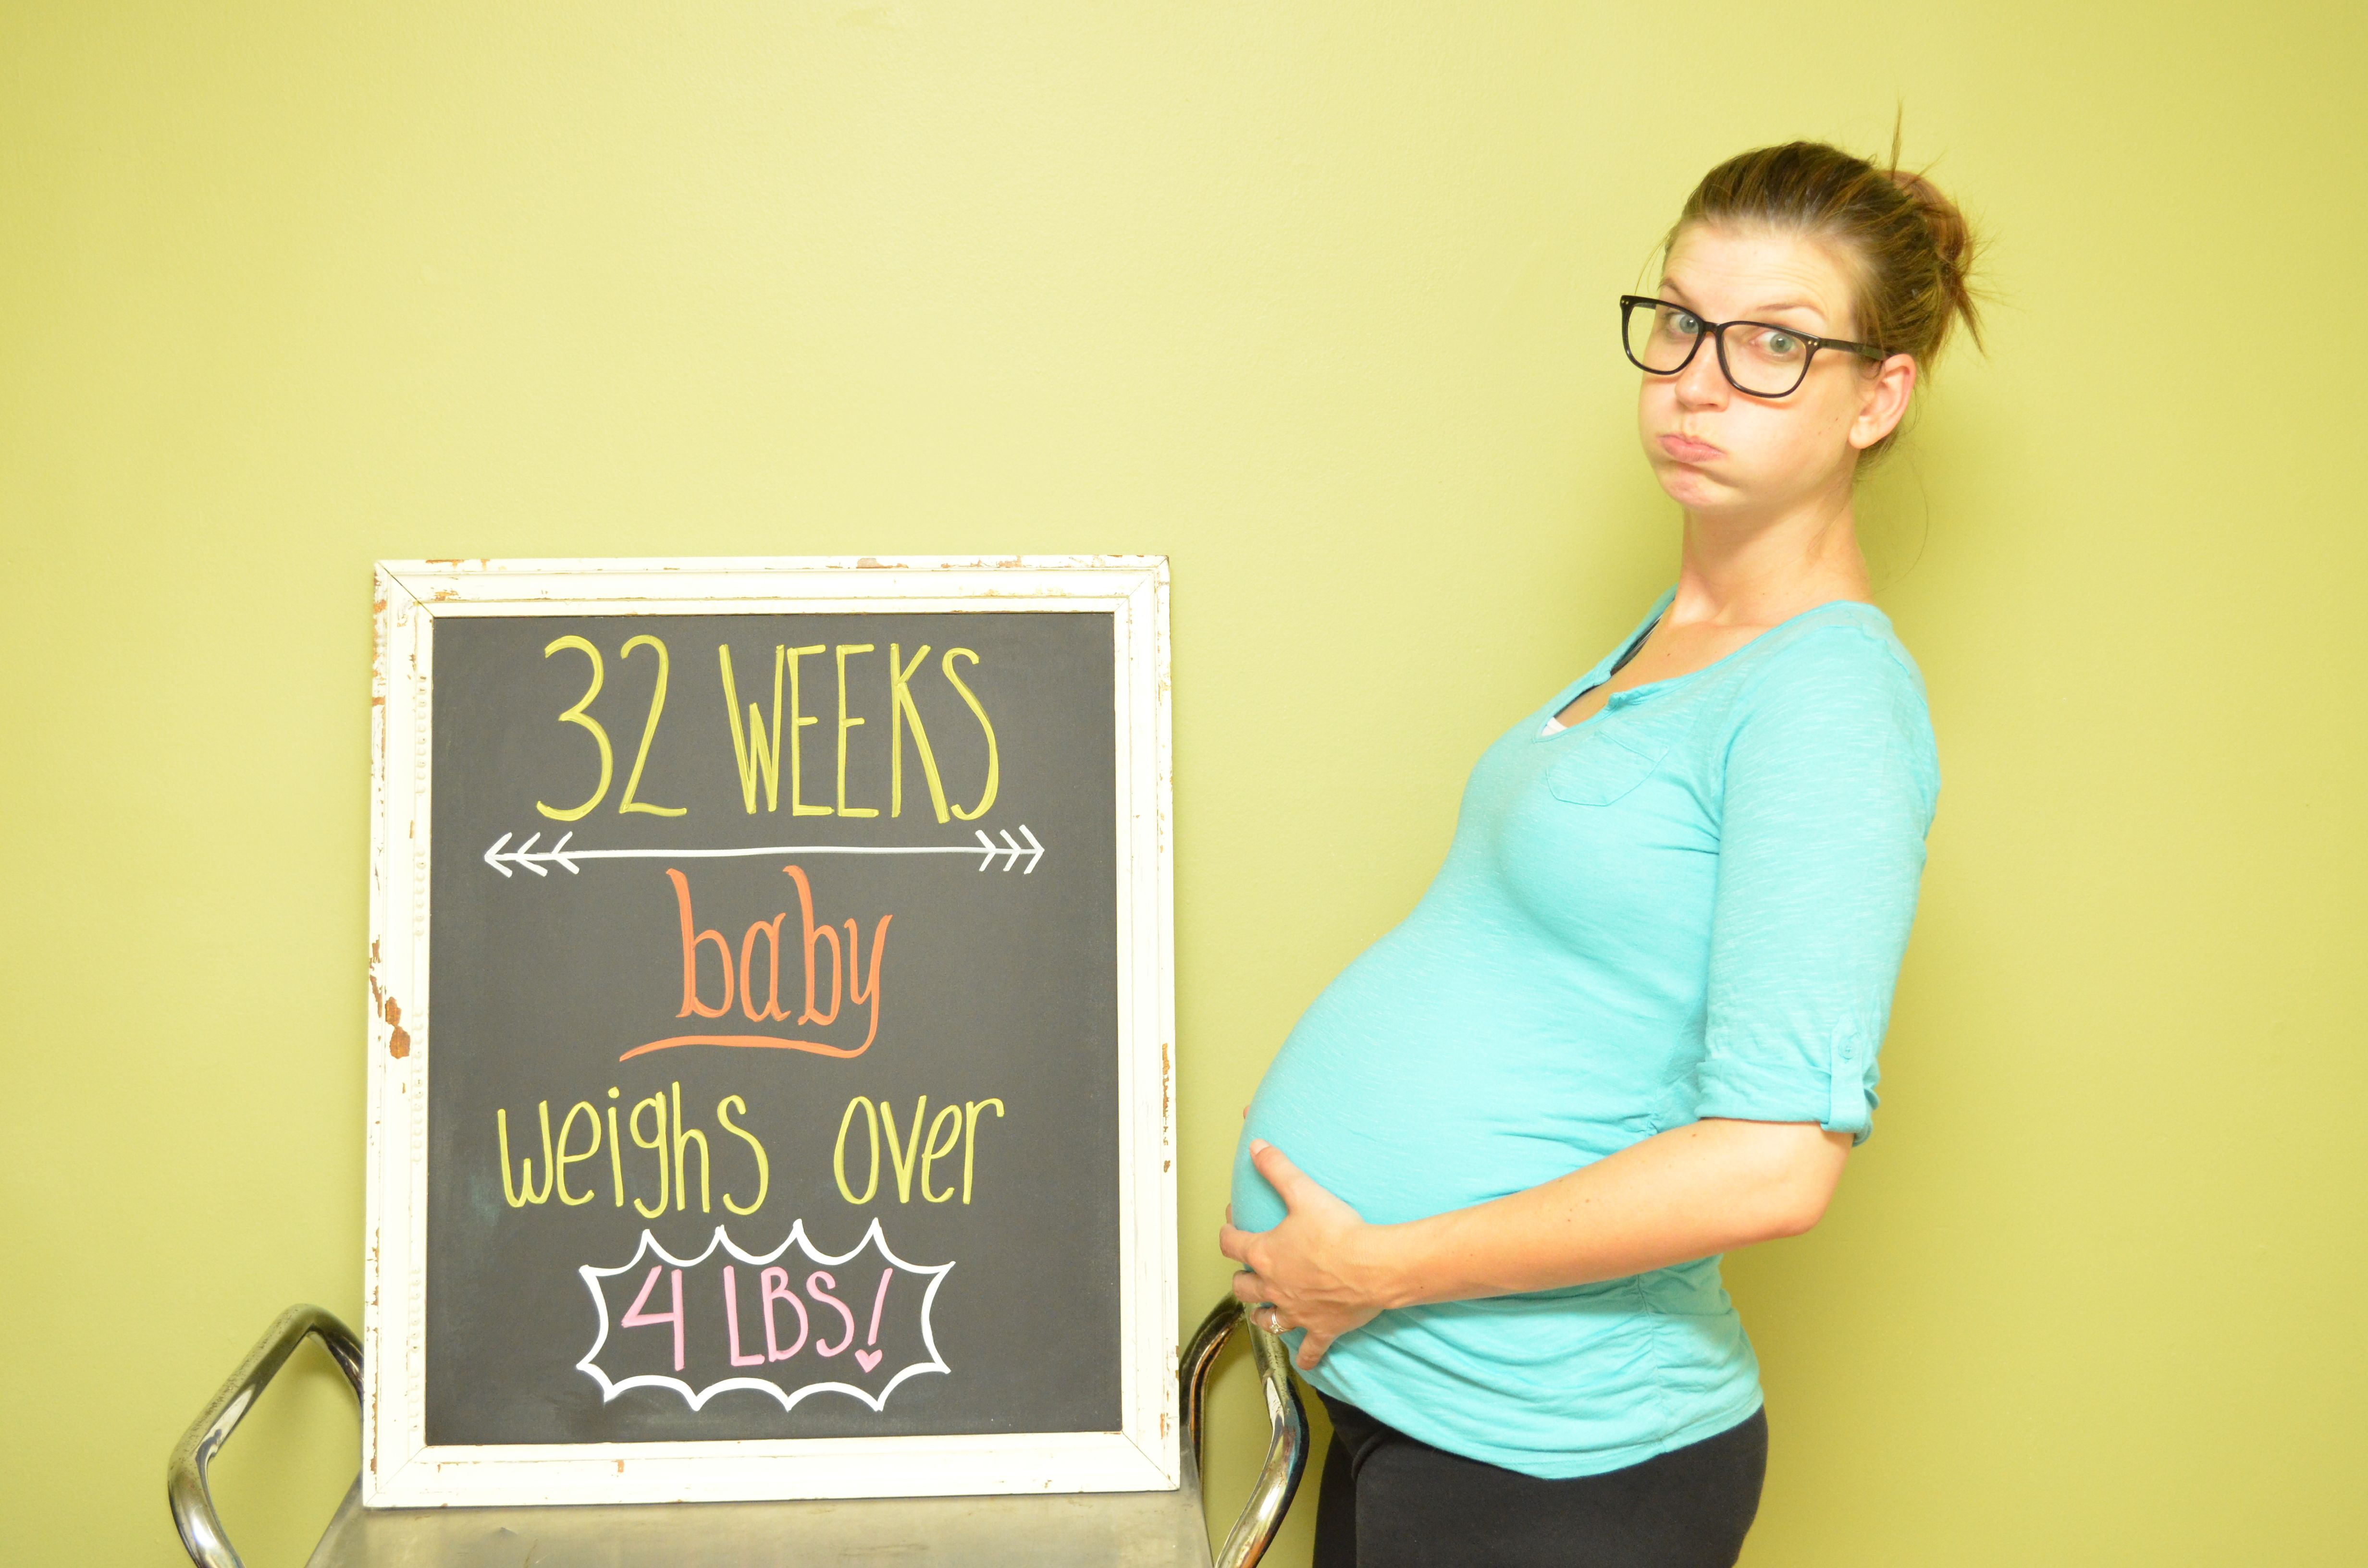 Search results for fetus at 32 weeks calendar 2015 for Gardening 32 weeks pregnant